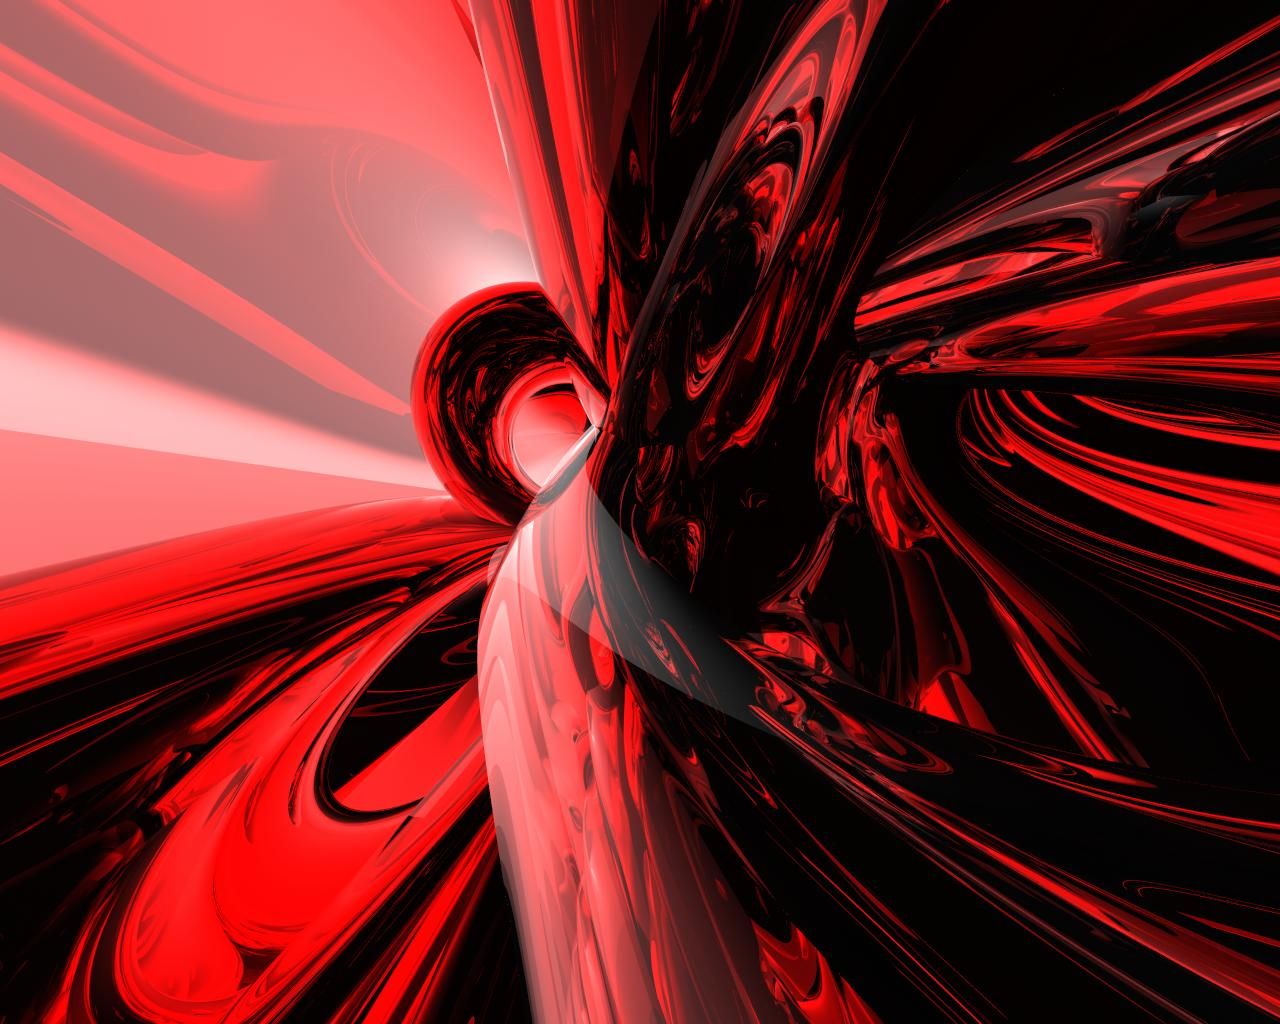 Cool Backgrounds Red And Black Posted By Michelle Anderson